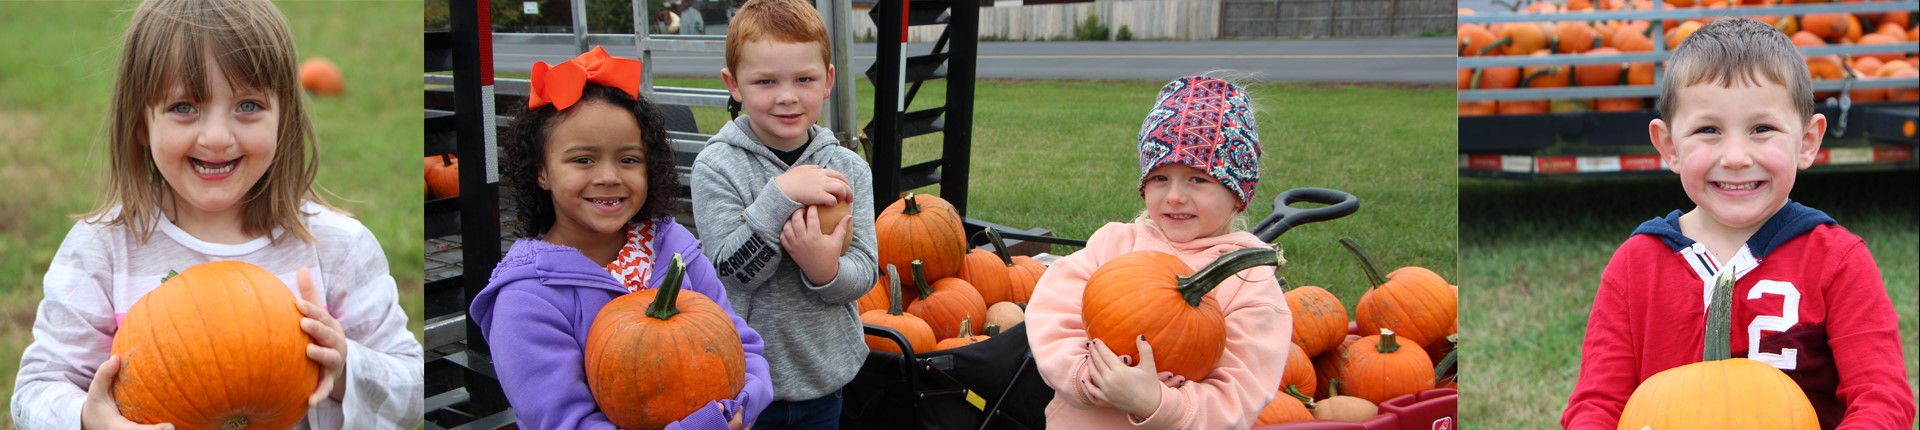 Preschoolers picking out their favorite pumpkins.